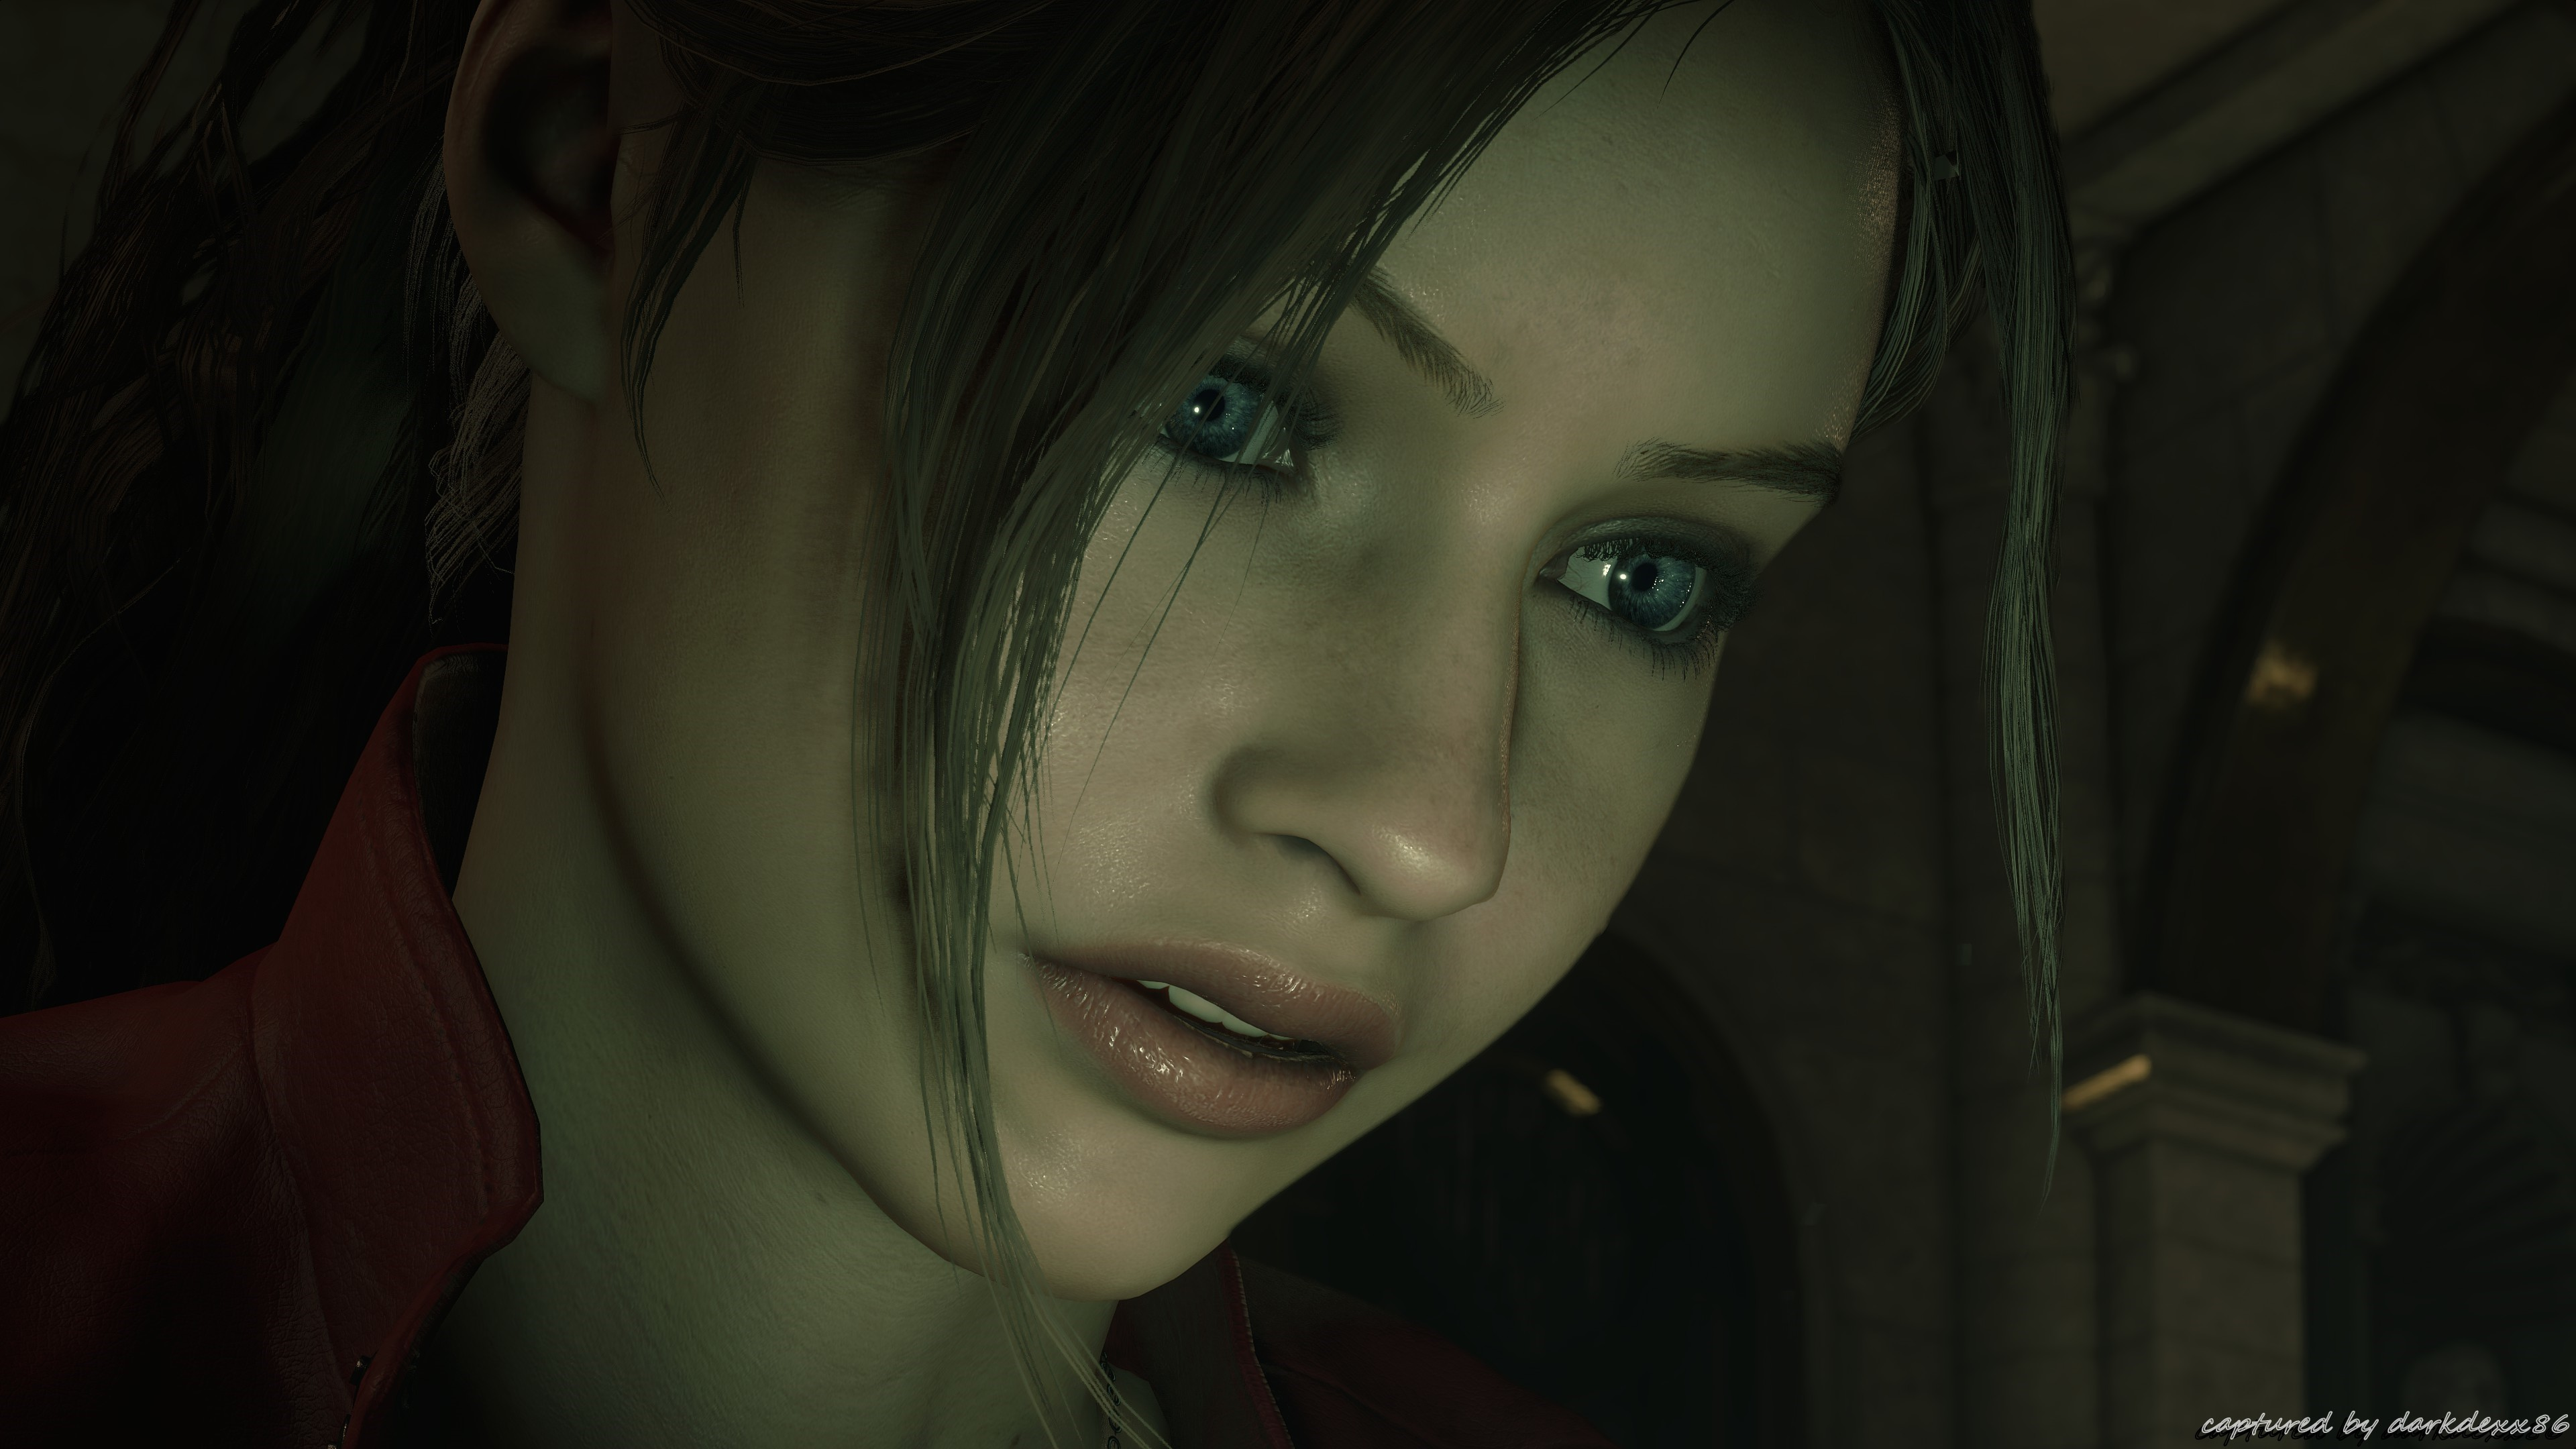 Res: 3840x2160, Resident Evil 2 Biohazard 4K pic005 * Claire Redfield * Max Details and  Shadows * 4K